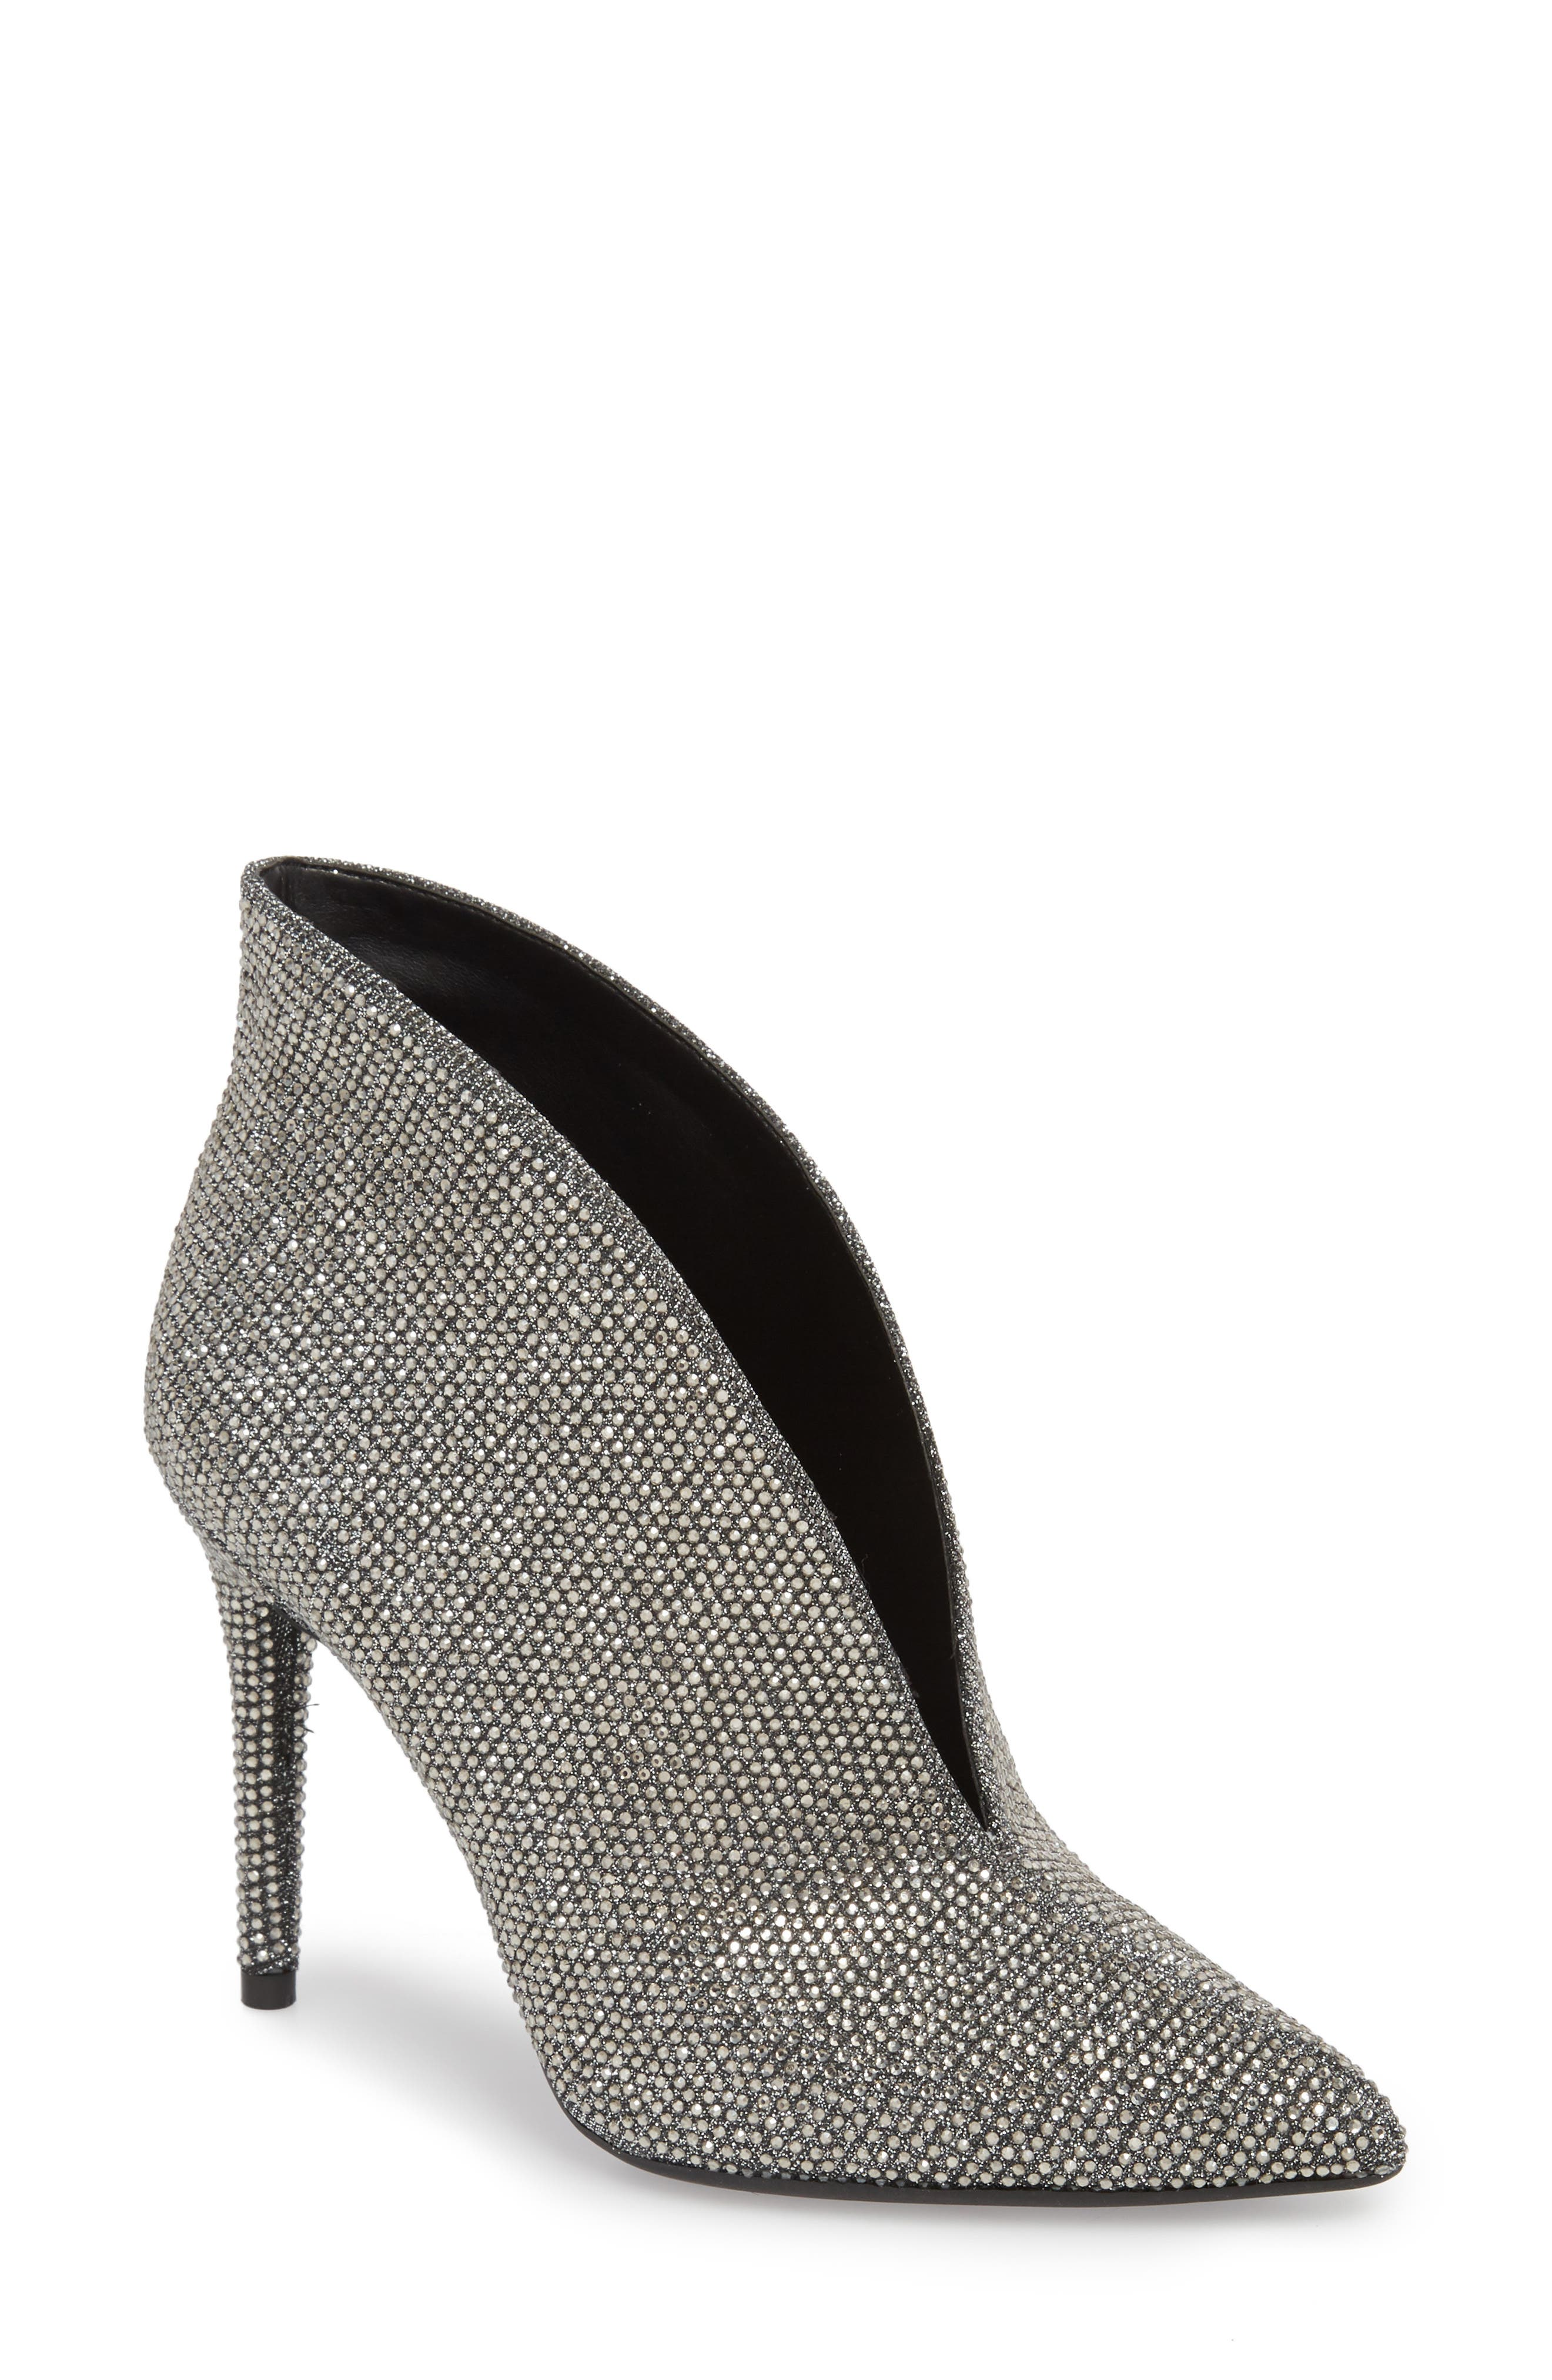 Lasnia Embellished Bootie,                         Main,                         color, PEWTER MULTI